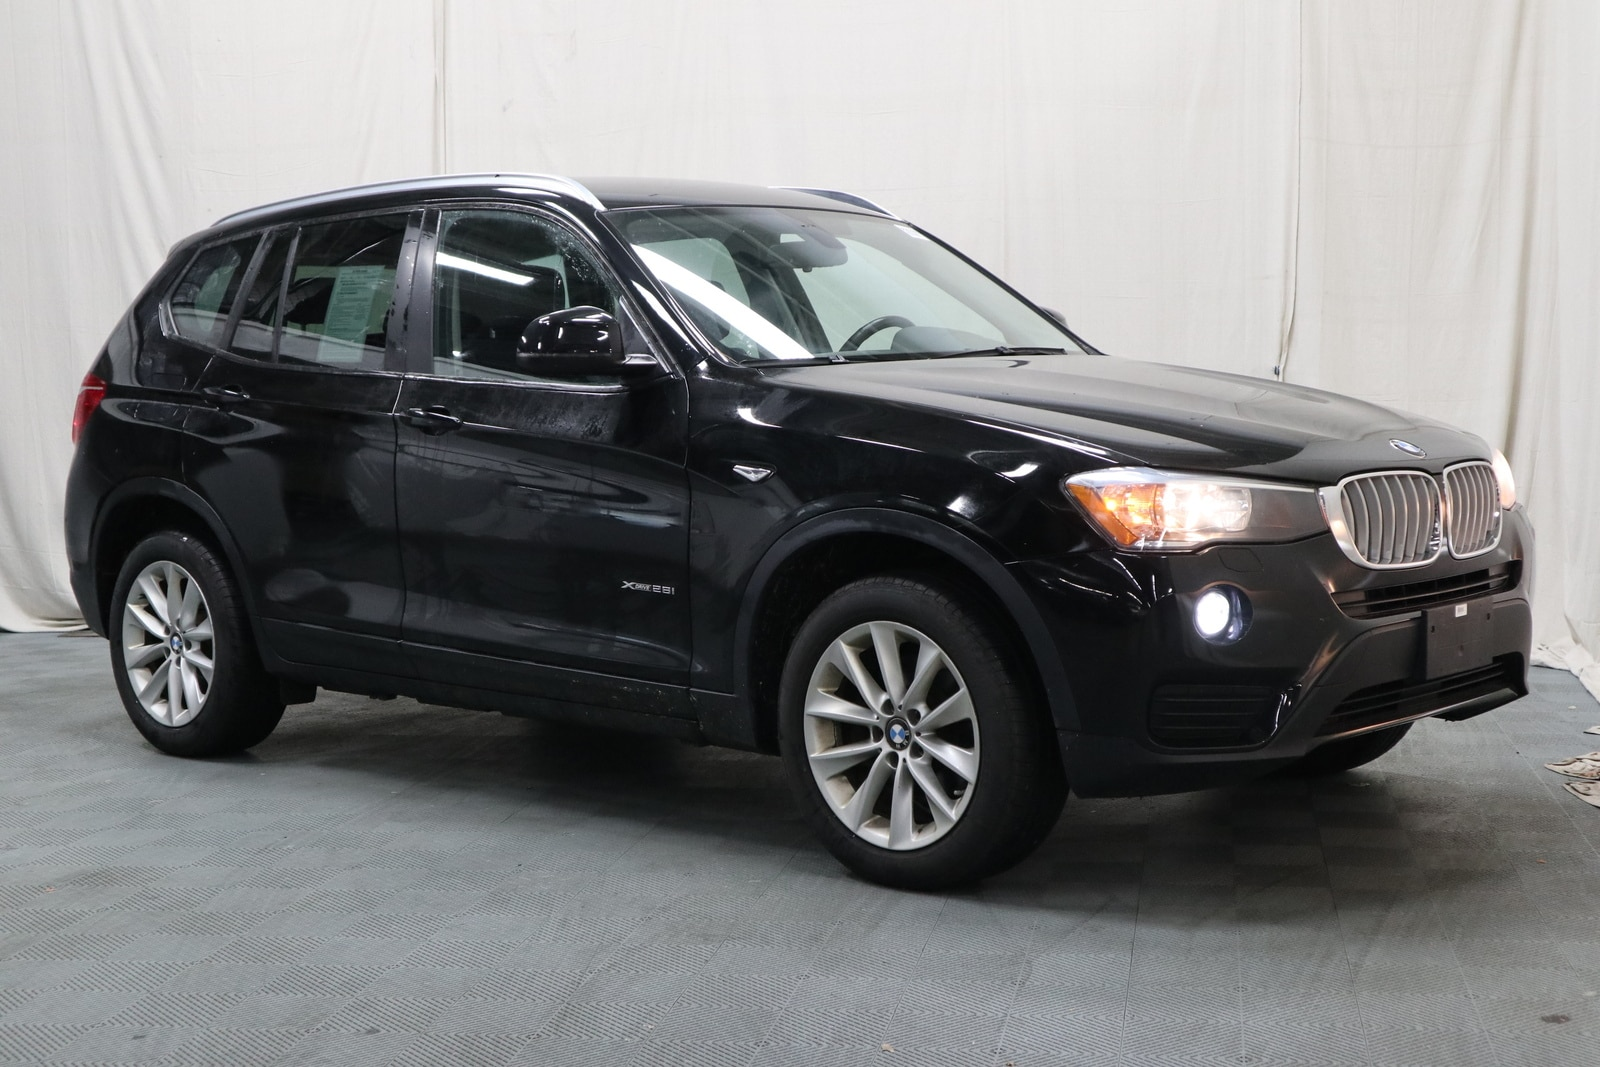 used 2017 BMW X3 car, priced at $22,898